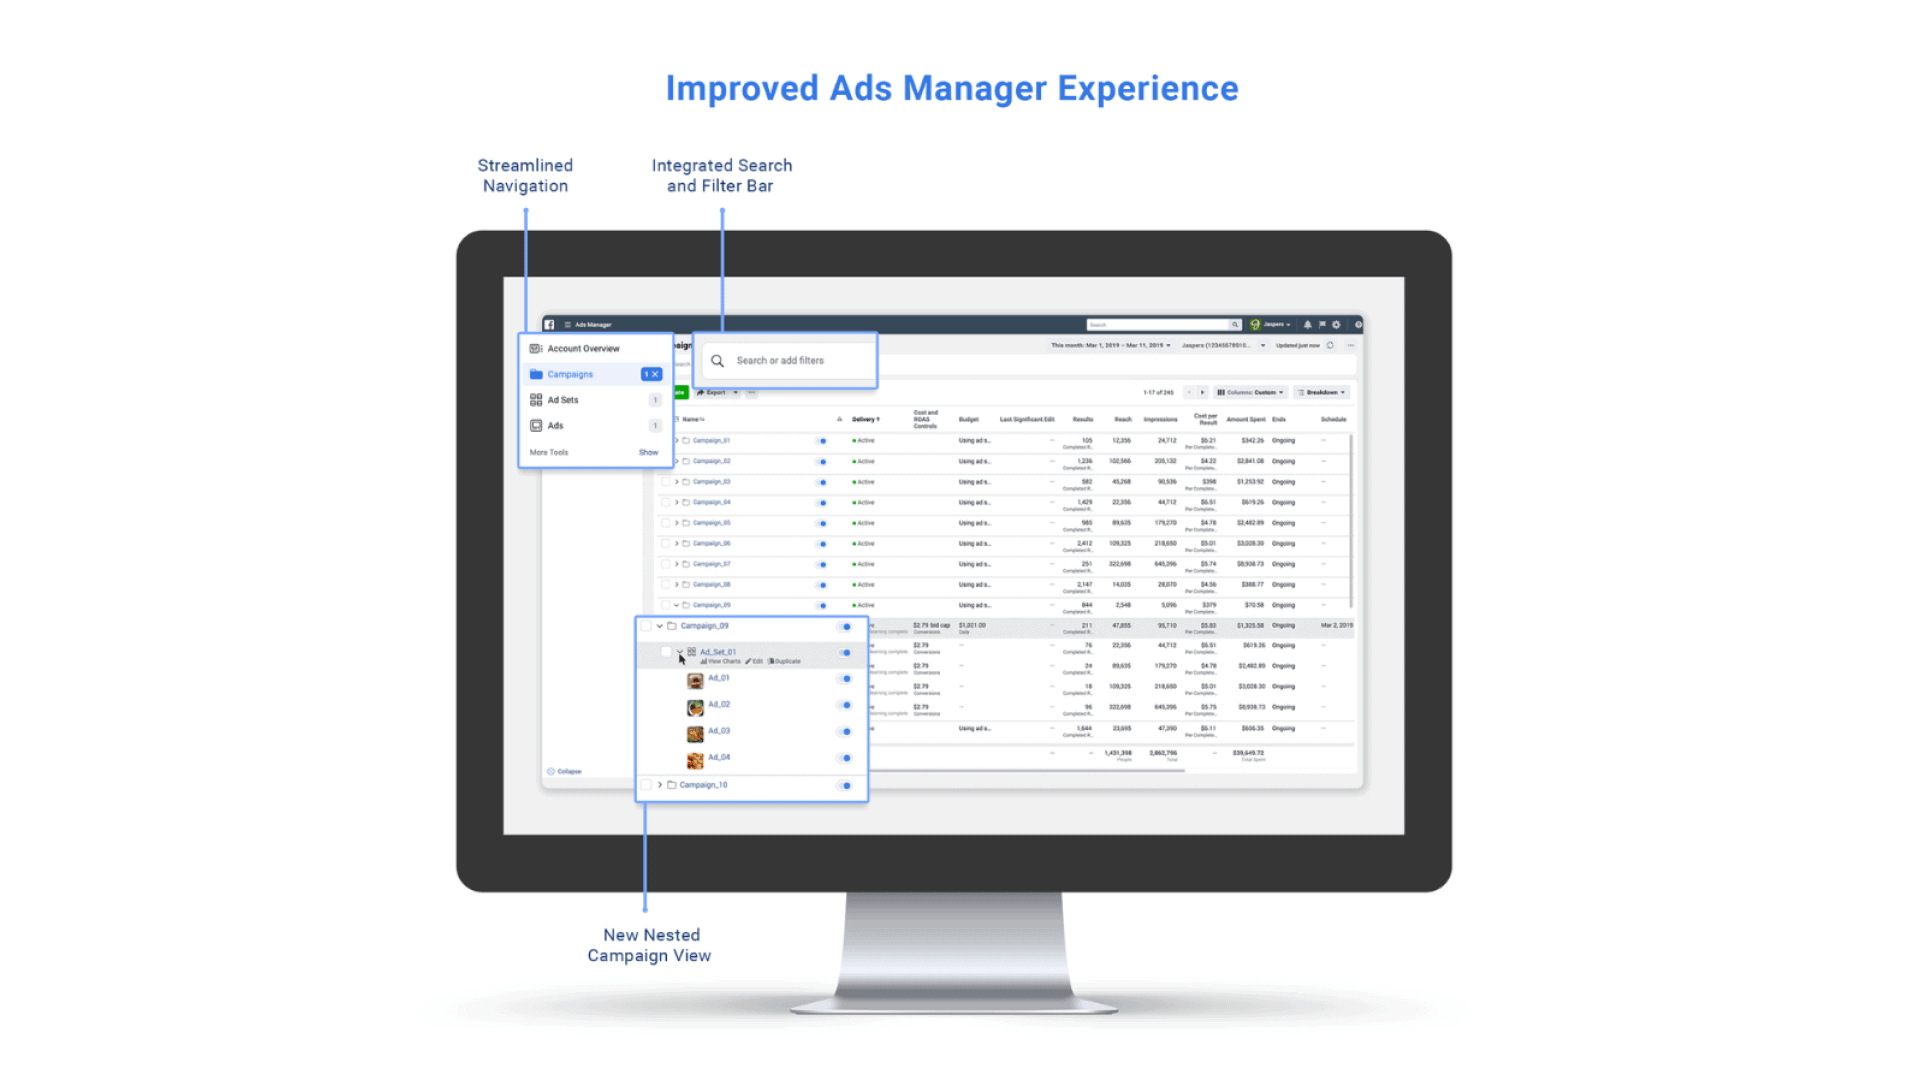 UI of the Business Manager